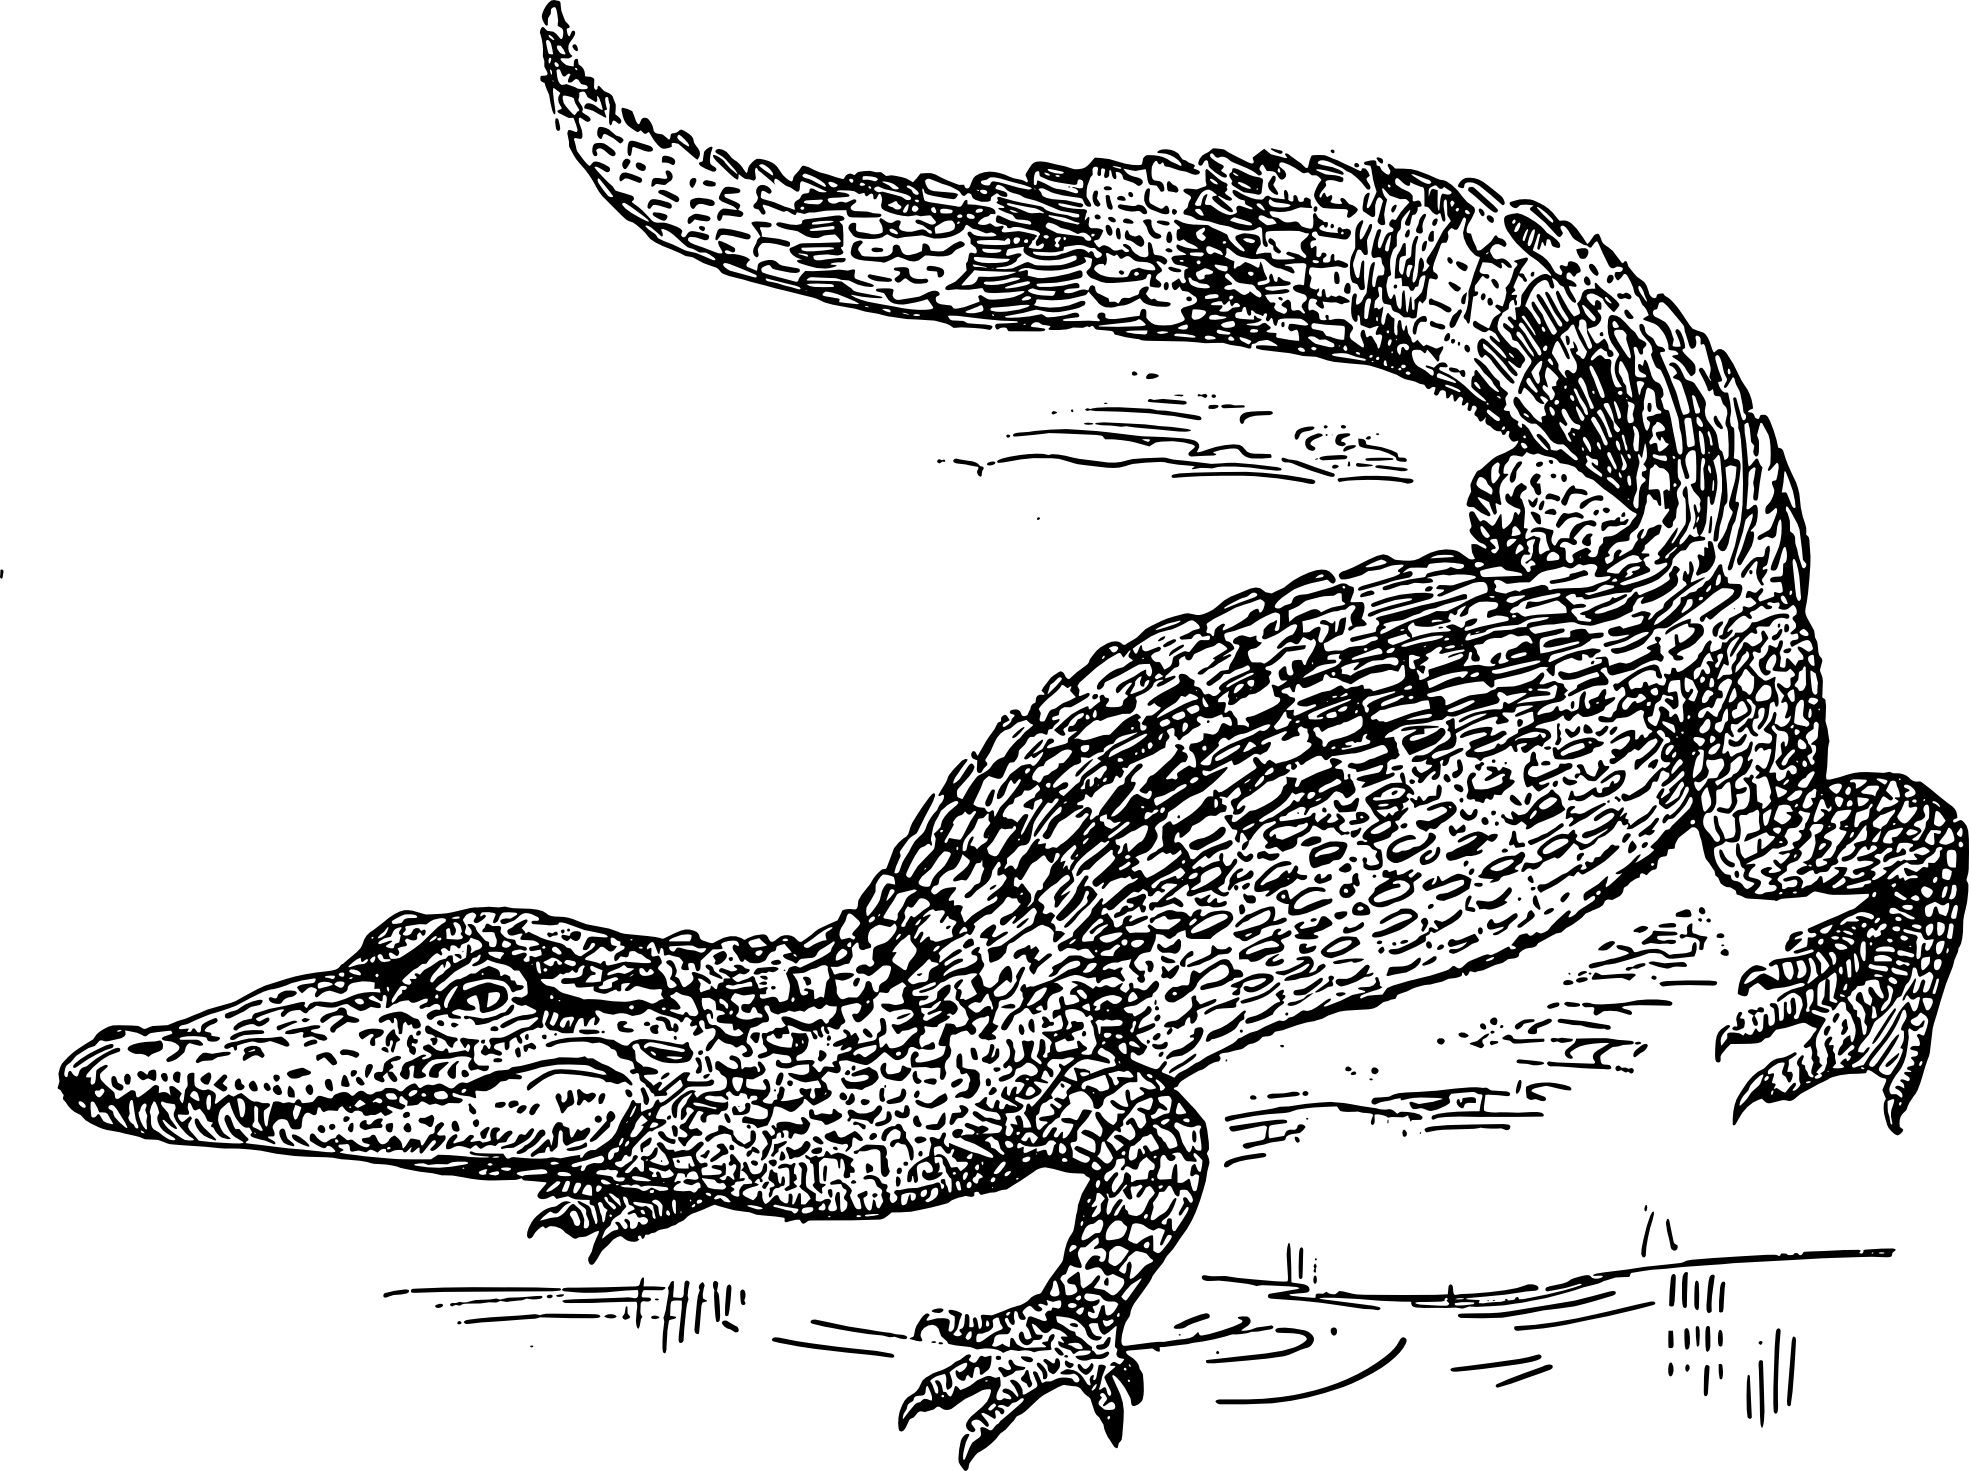 free printable pictures of alligators alligator coloring pages free teacher worksheets of free printable pictures alligators